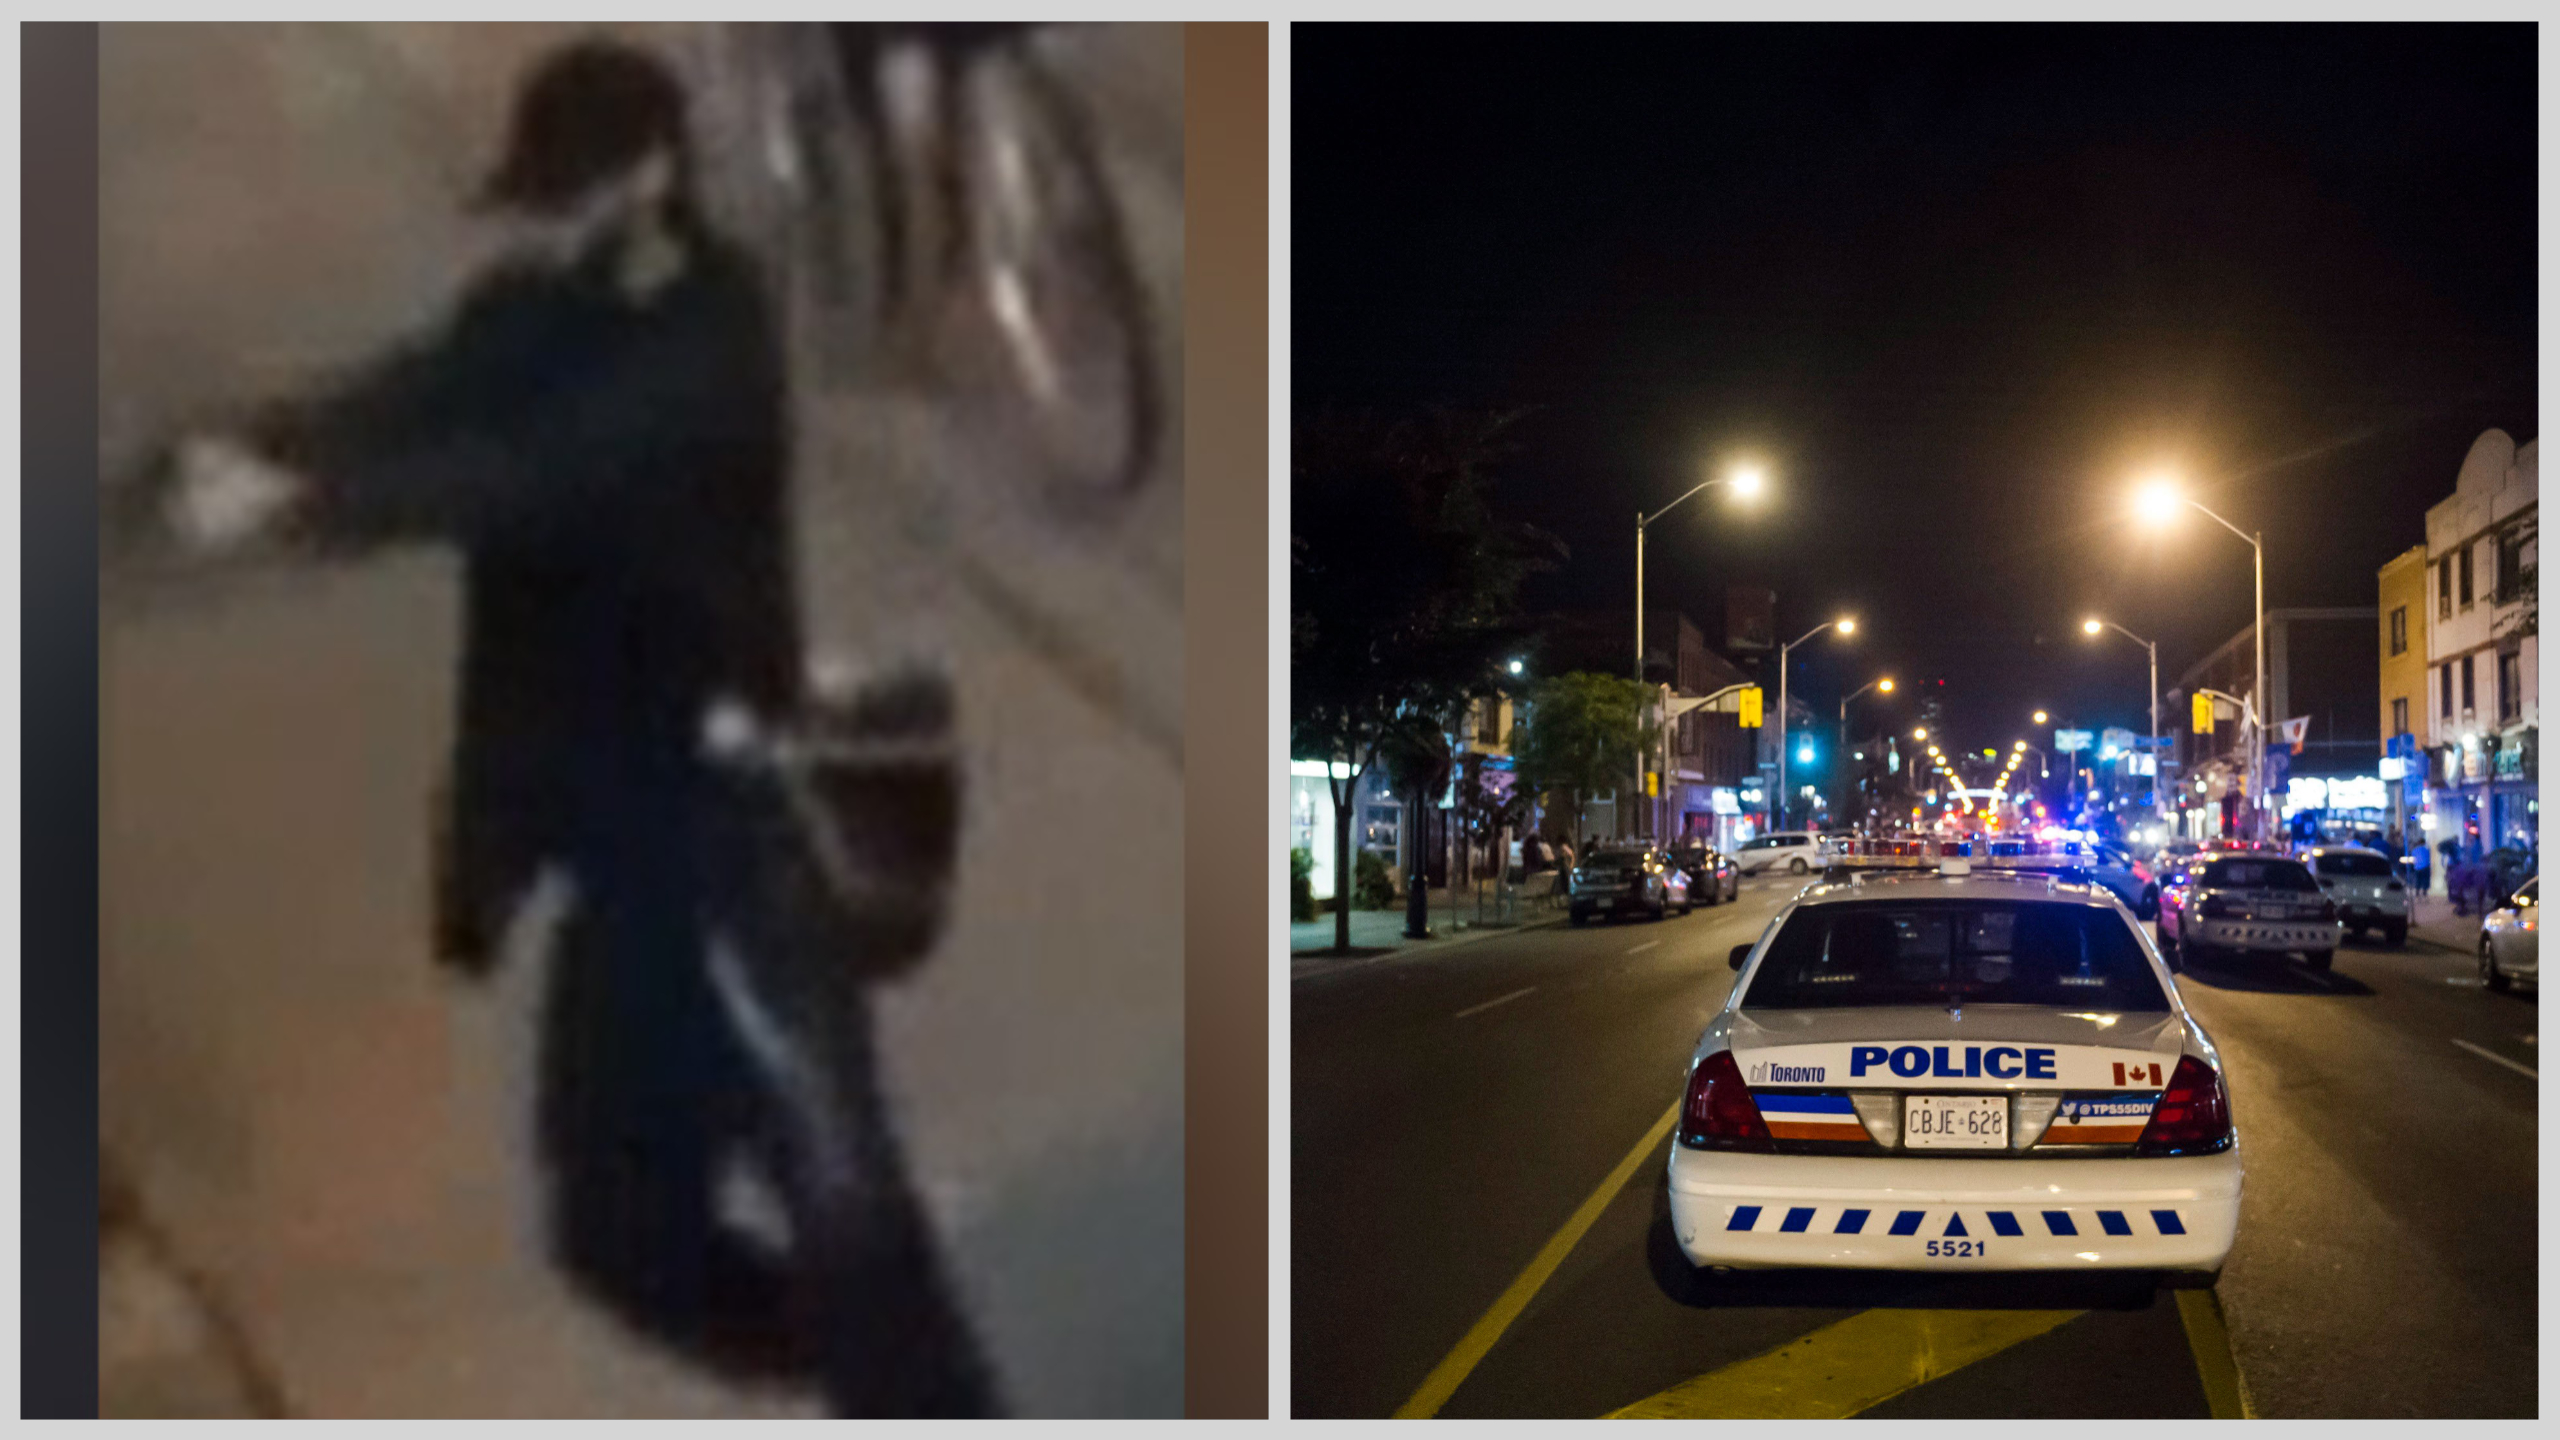 Danforth shooter was previously known to police for 'online